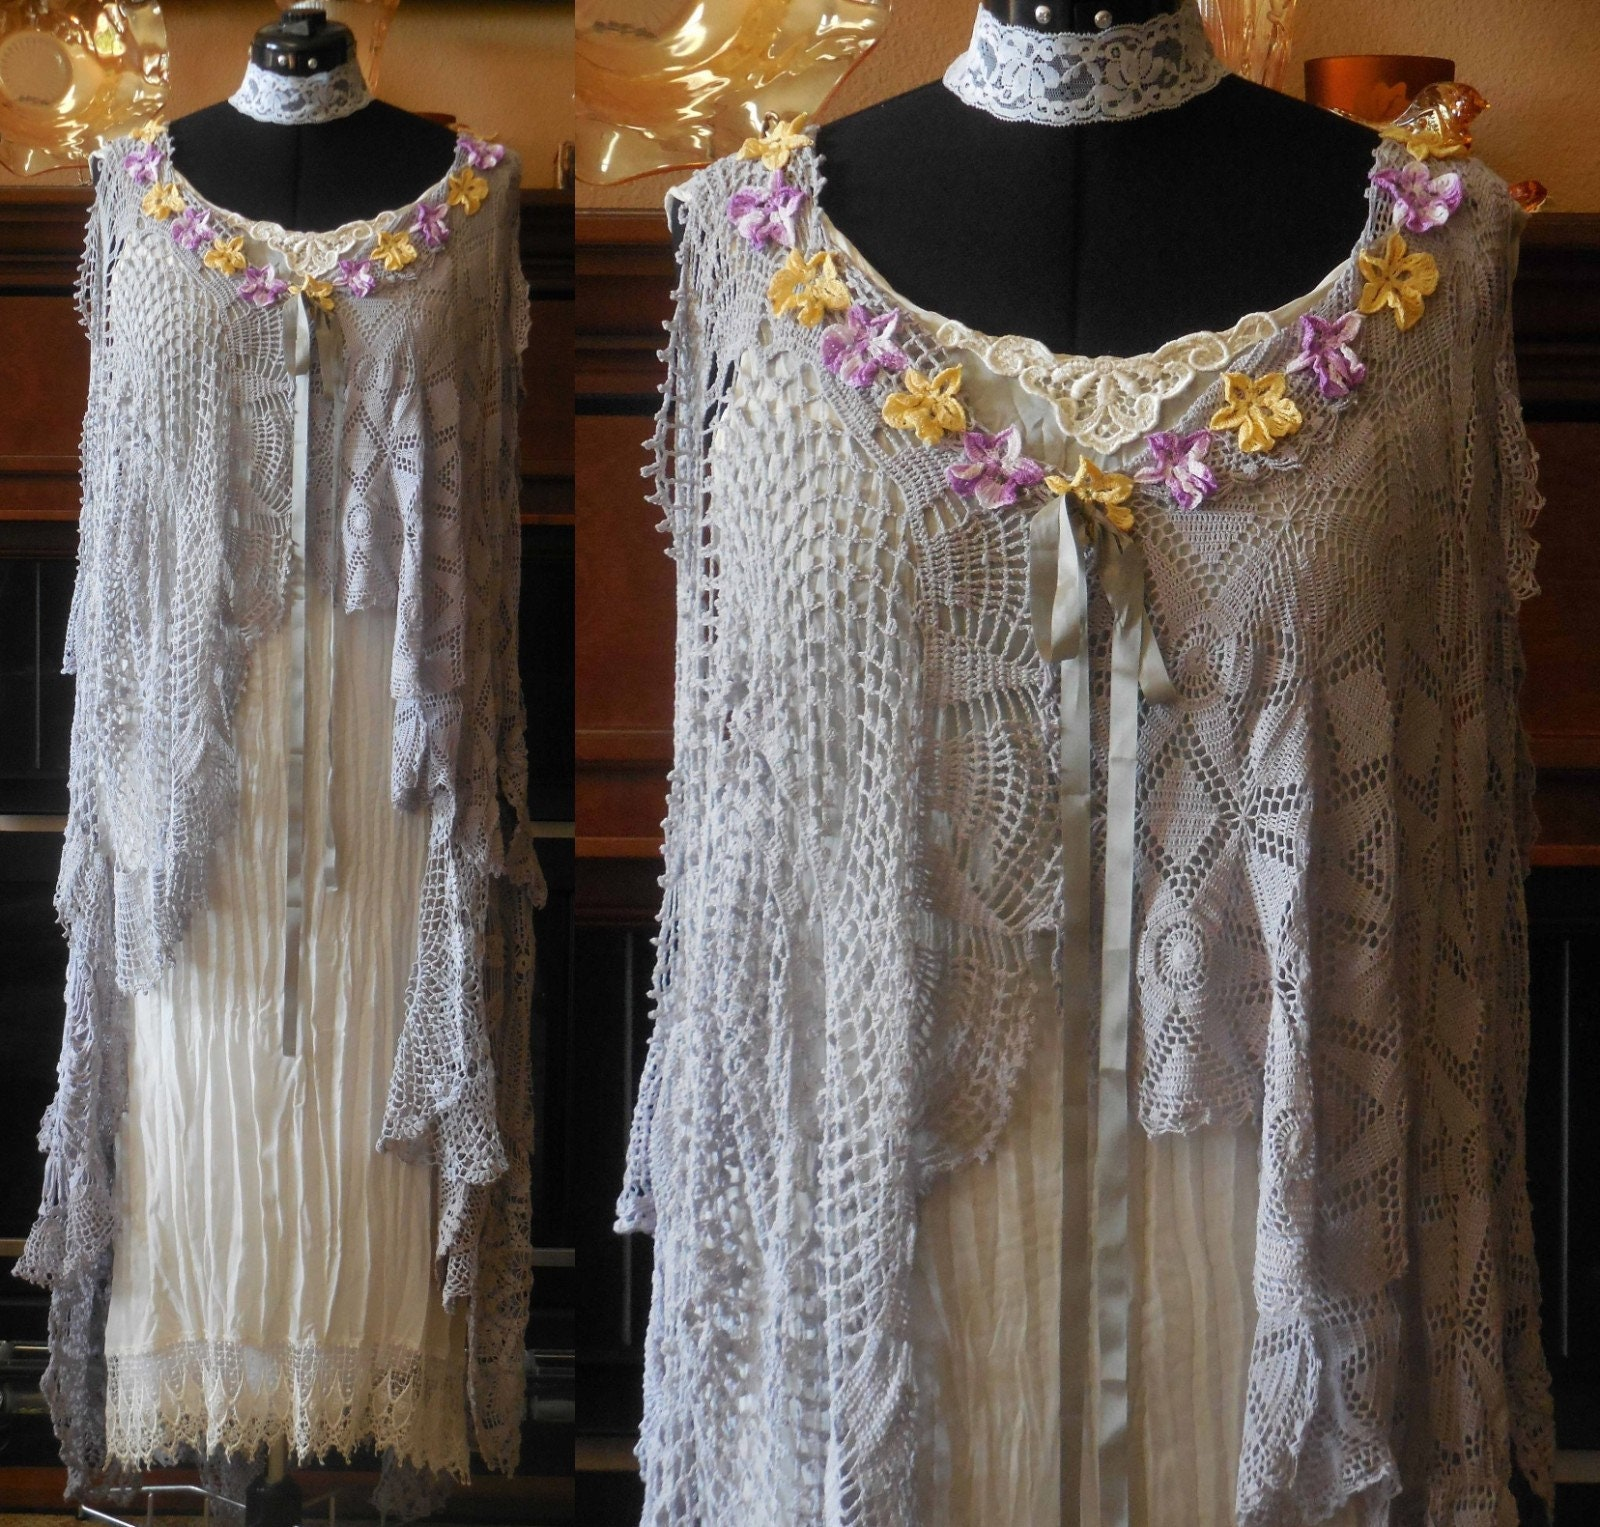 Vintage Aprons, Retro Aprons, Old Fashioned Aprons & Patterns Handmade Crocheted Victorian Lace Tunic Doily Top Dress Garden Wedding Romantic Duster Grey Size MedLarge $224.90 AT vintagedancer.com